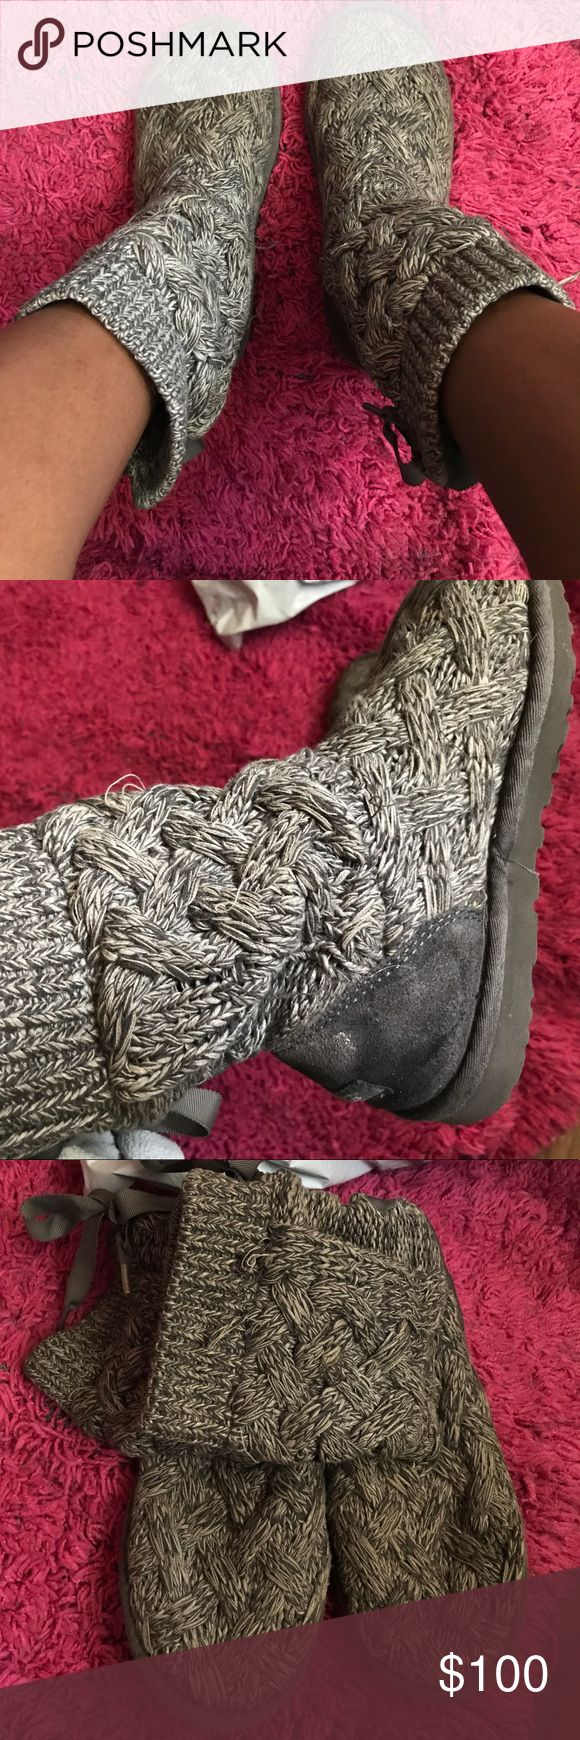 Ugg boots Uggs boots not the worn down. There is marks from salt on the back on the boot. Also have its original box that it came in. (Reasonable offers) UGG Shoes Winter & Rain Boots